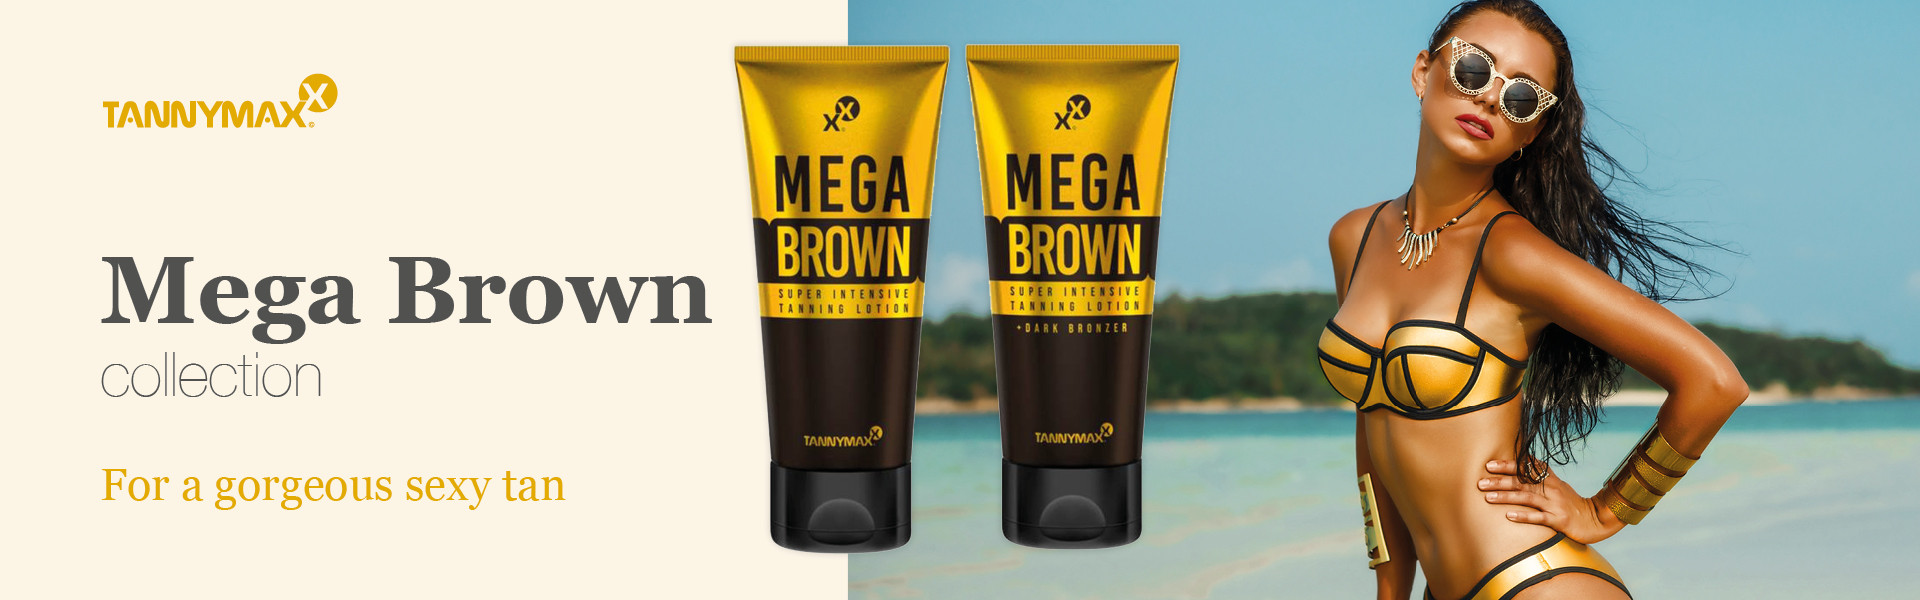 MEGA BROWN Super Intensive TANNING + Dark BRONZER